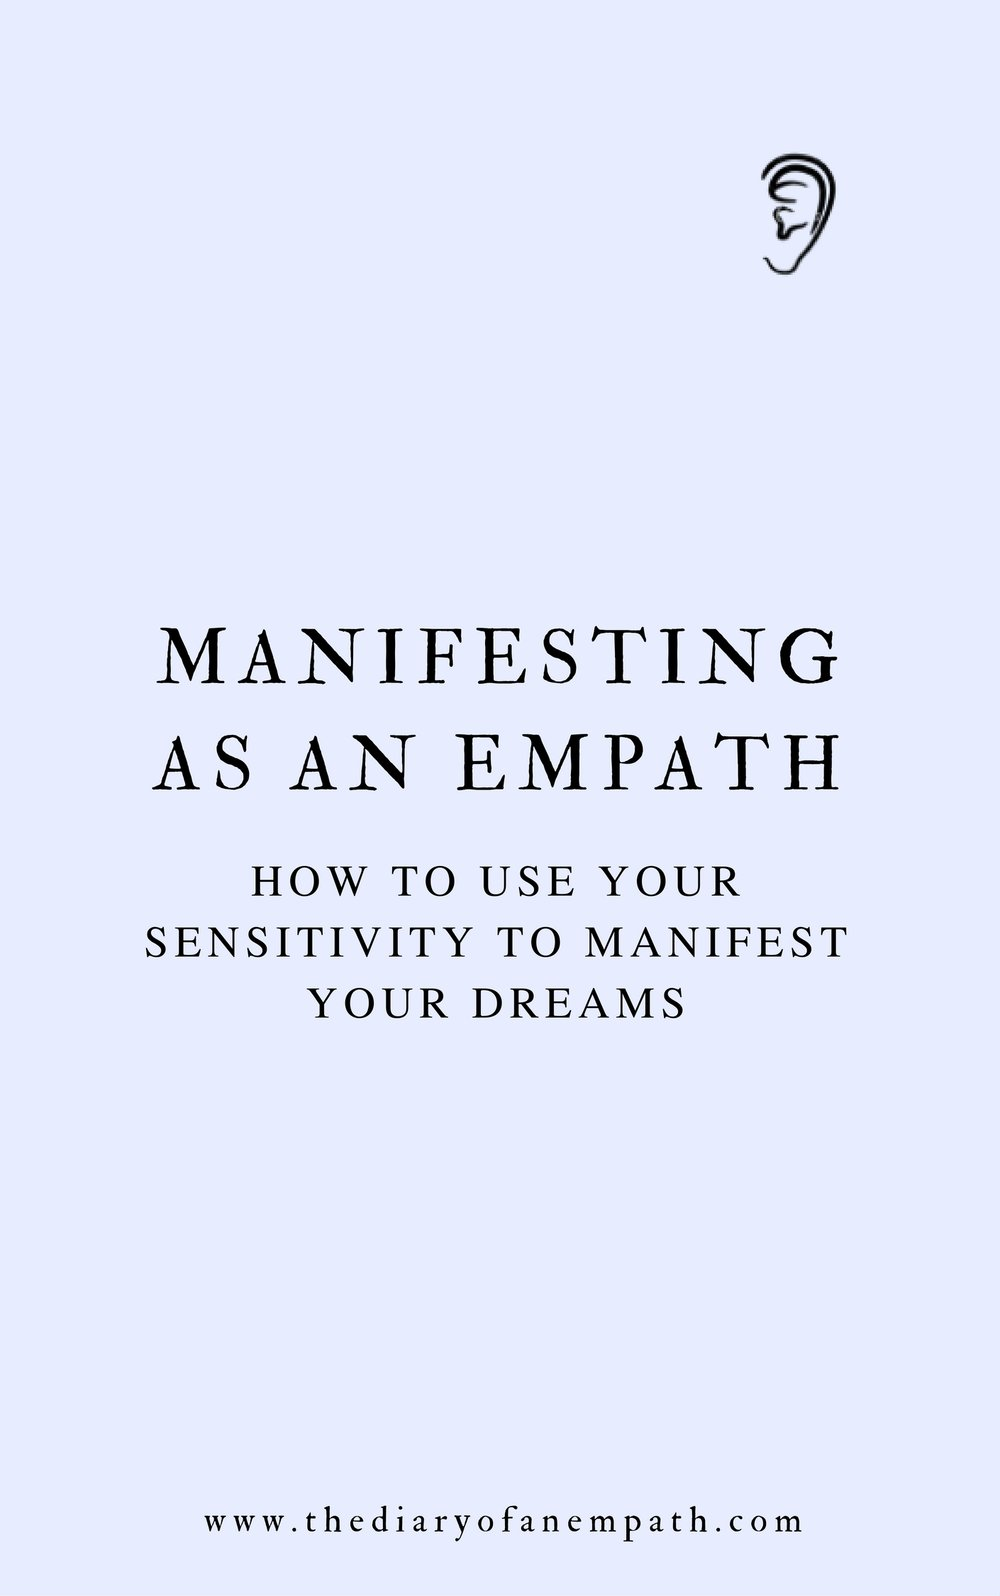 manifesting as an empath, thediaryofanempath.com